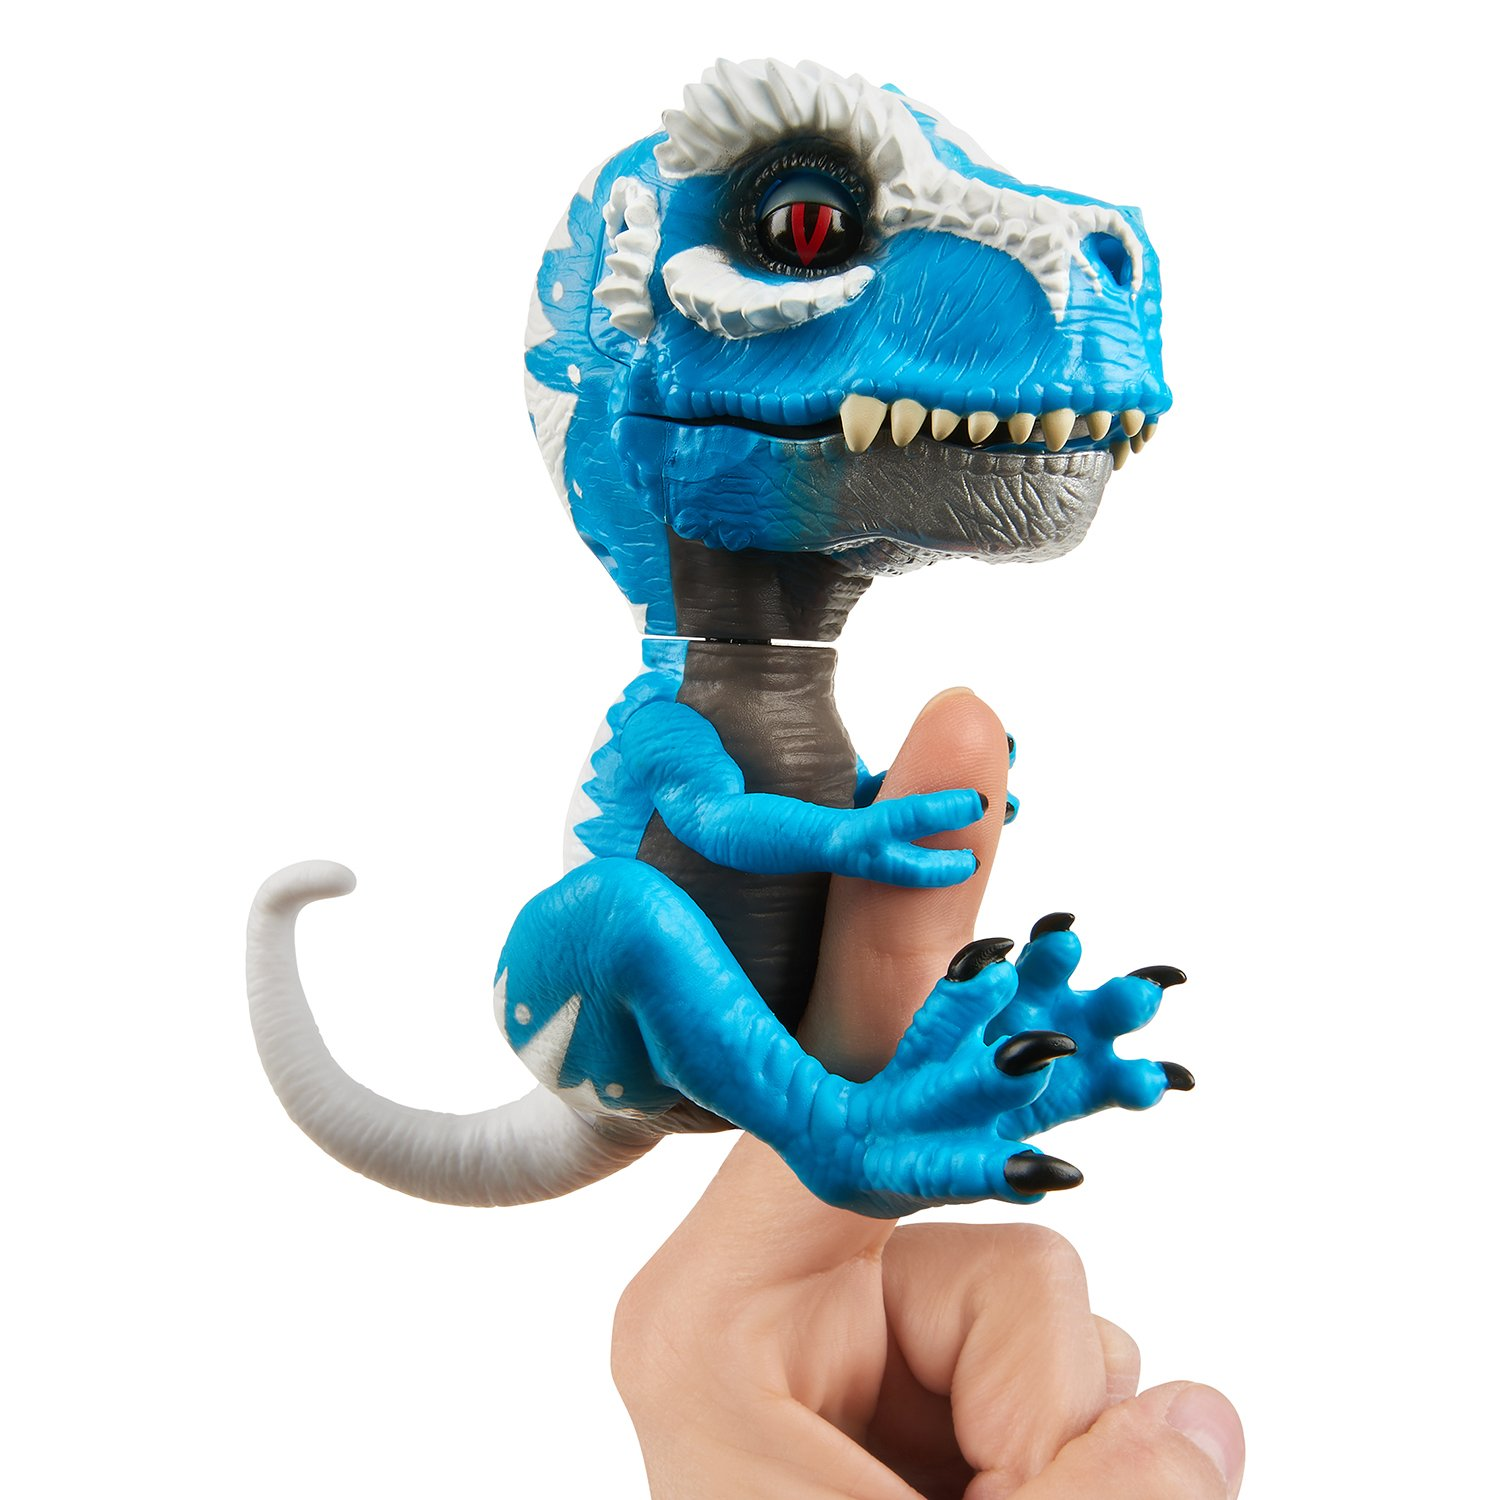 WowWee Untamed T-Rex by Fingerlings Ironjaw (Blue) -Interactive Collectible Dinosaur by WowWee (Image #2)